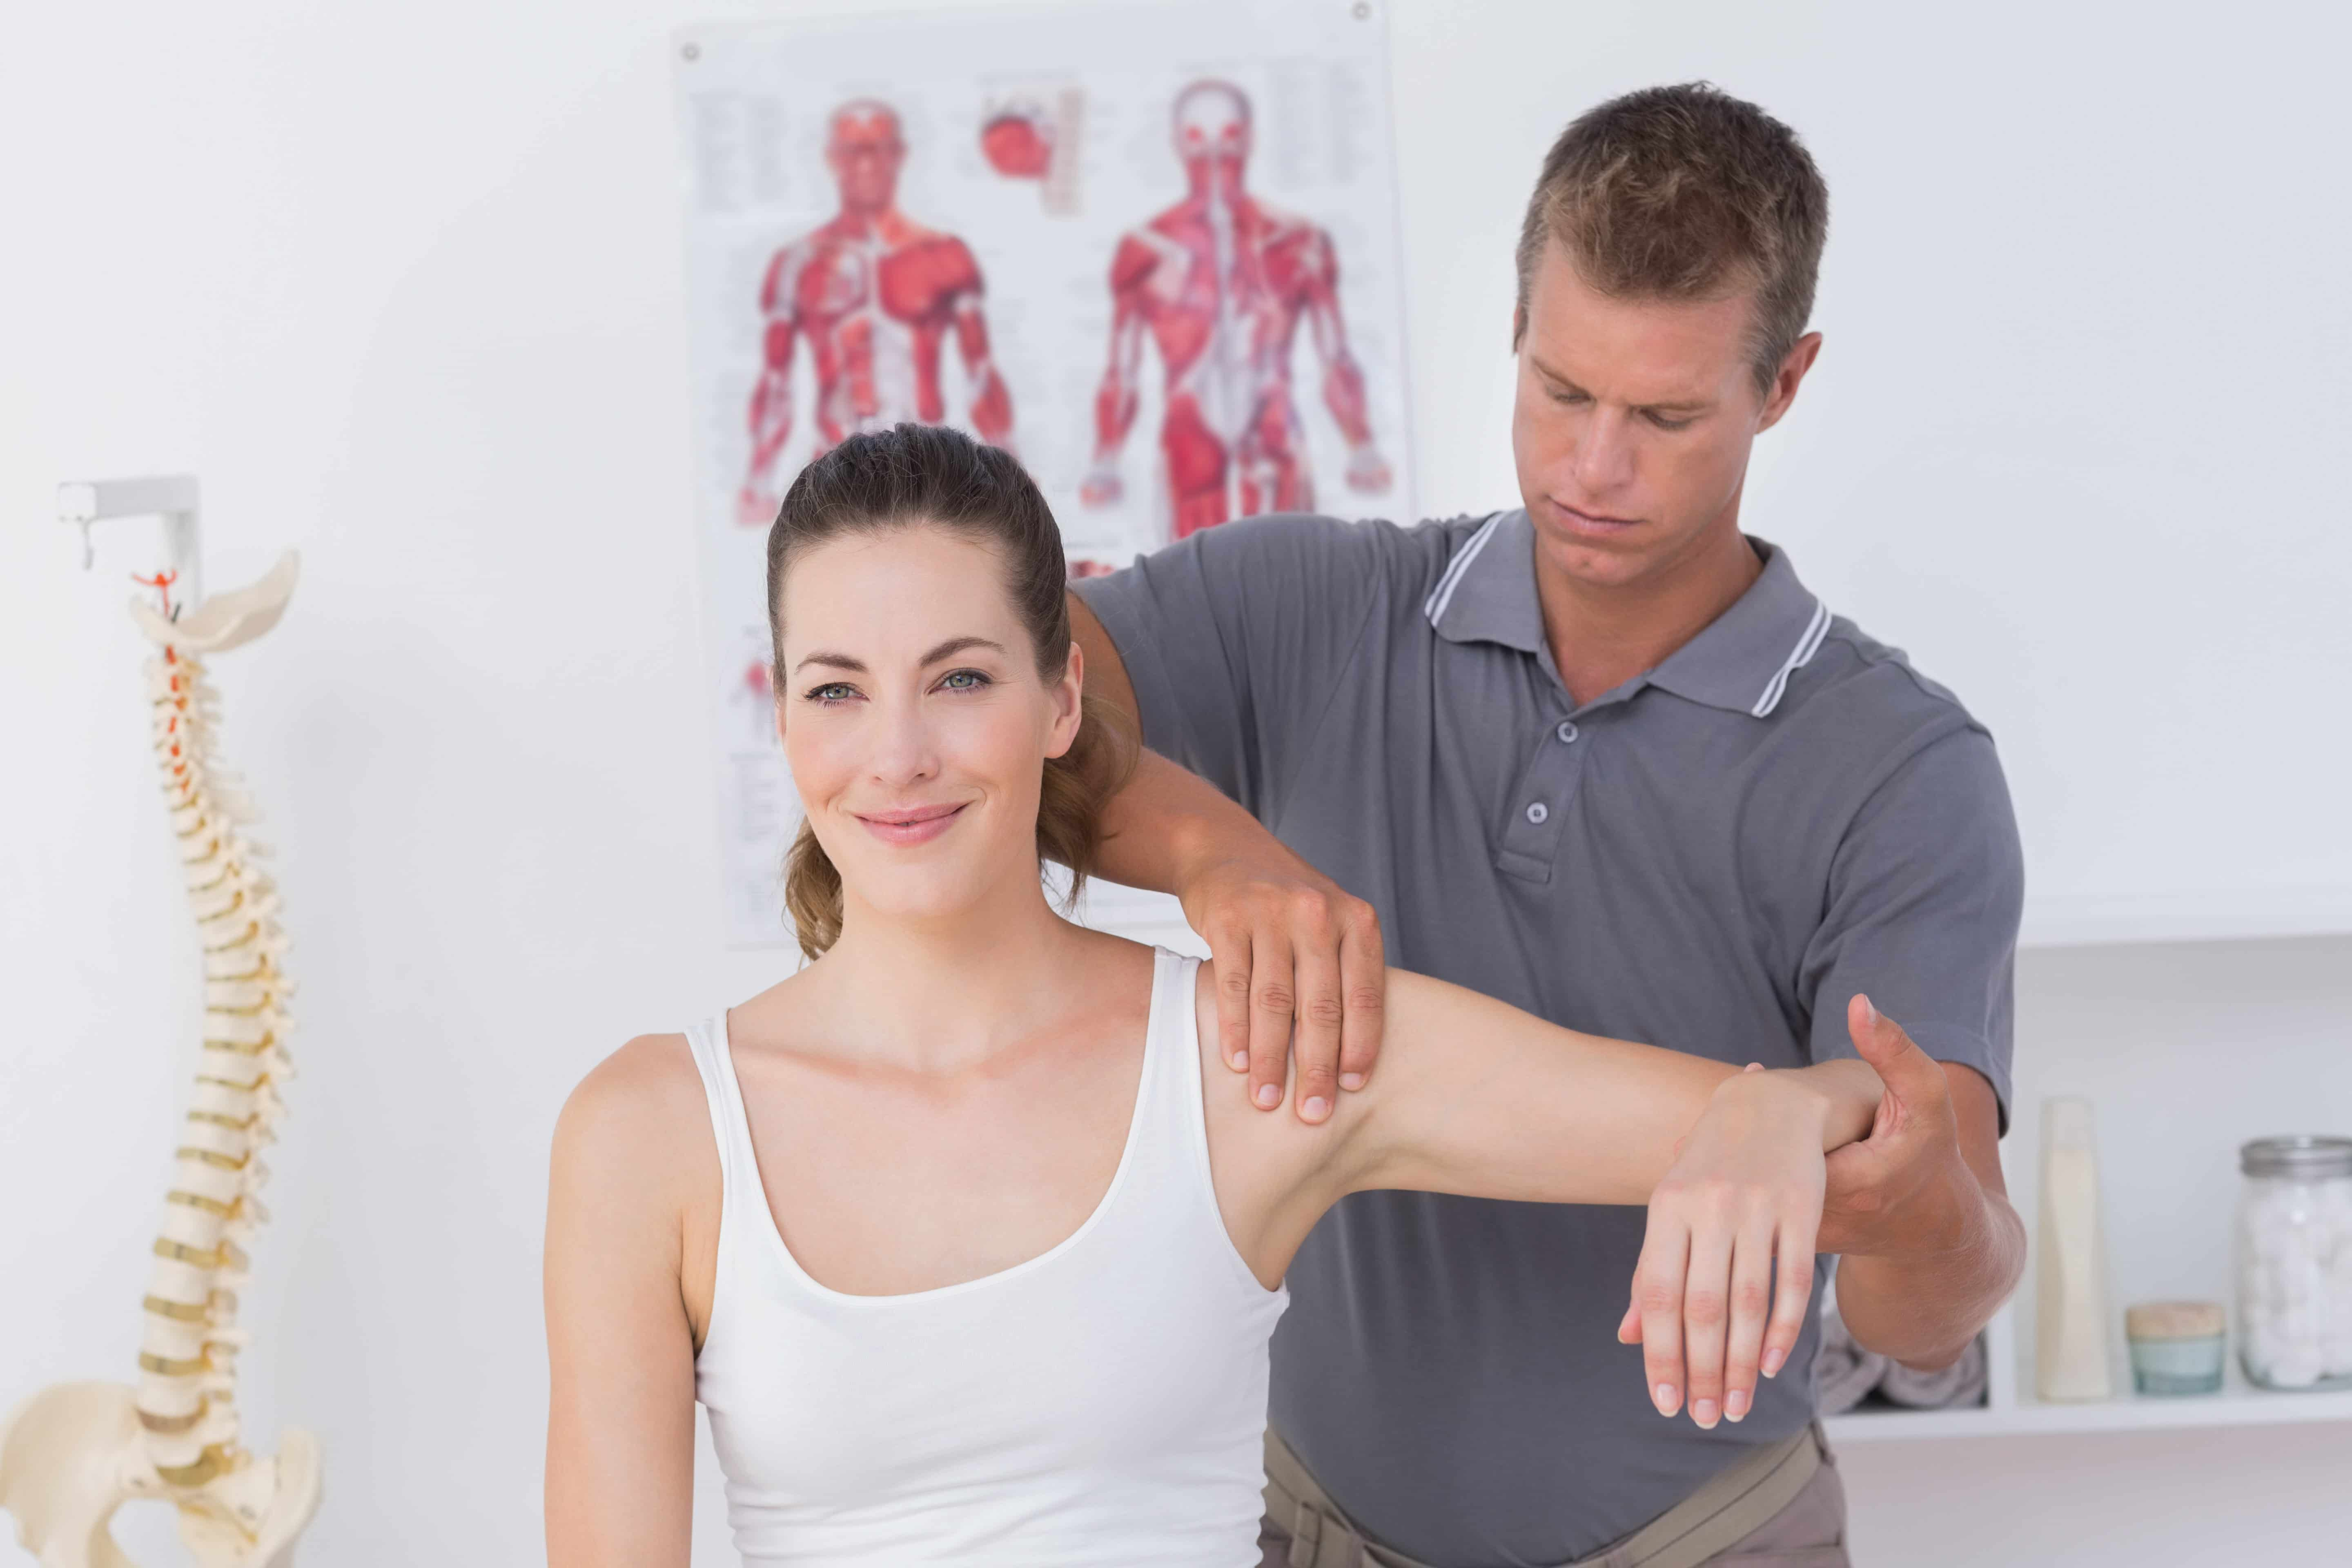 Woman getting her arm stretched by physical therapist